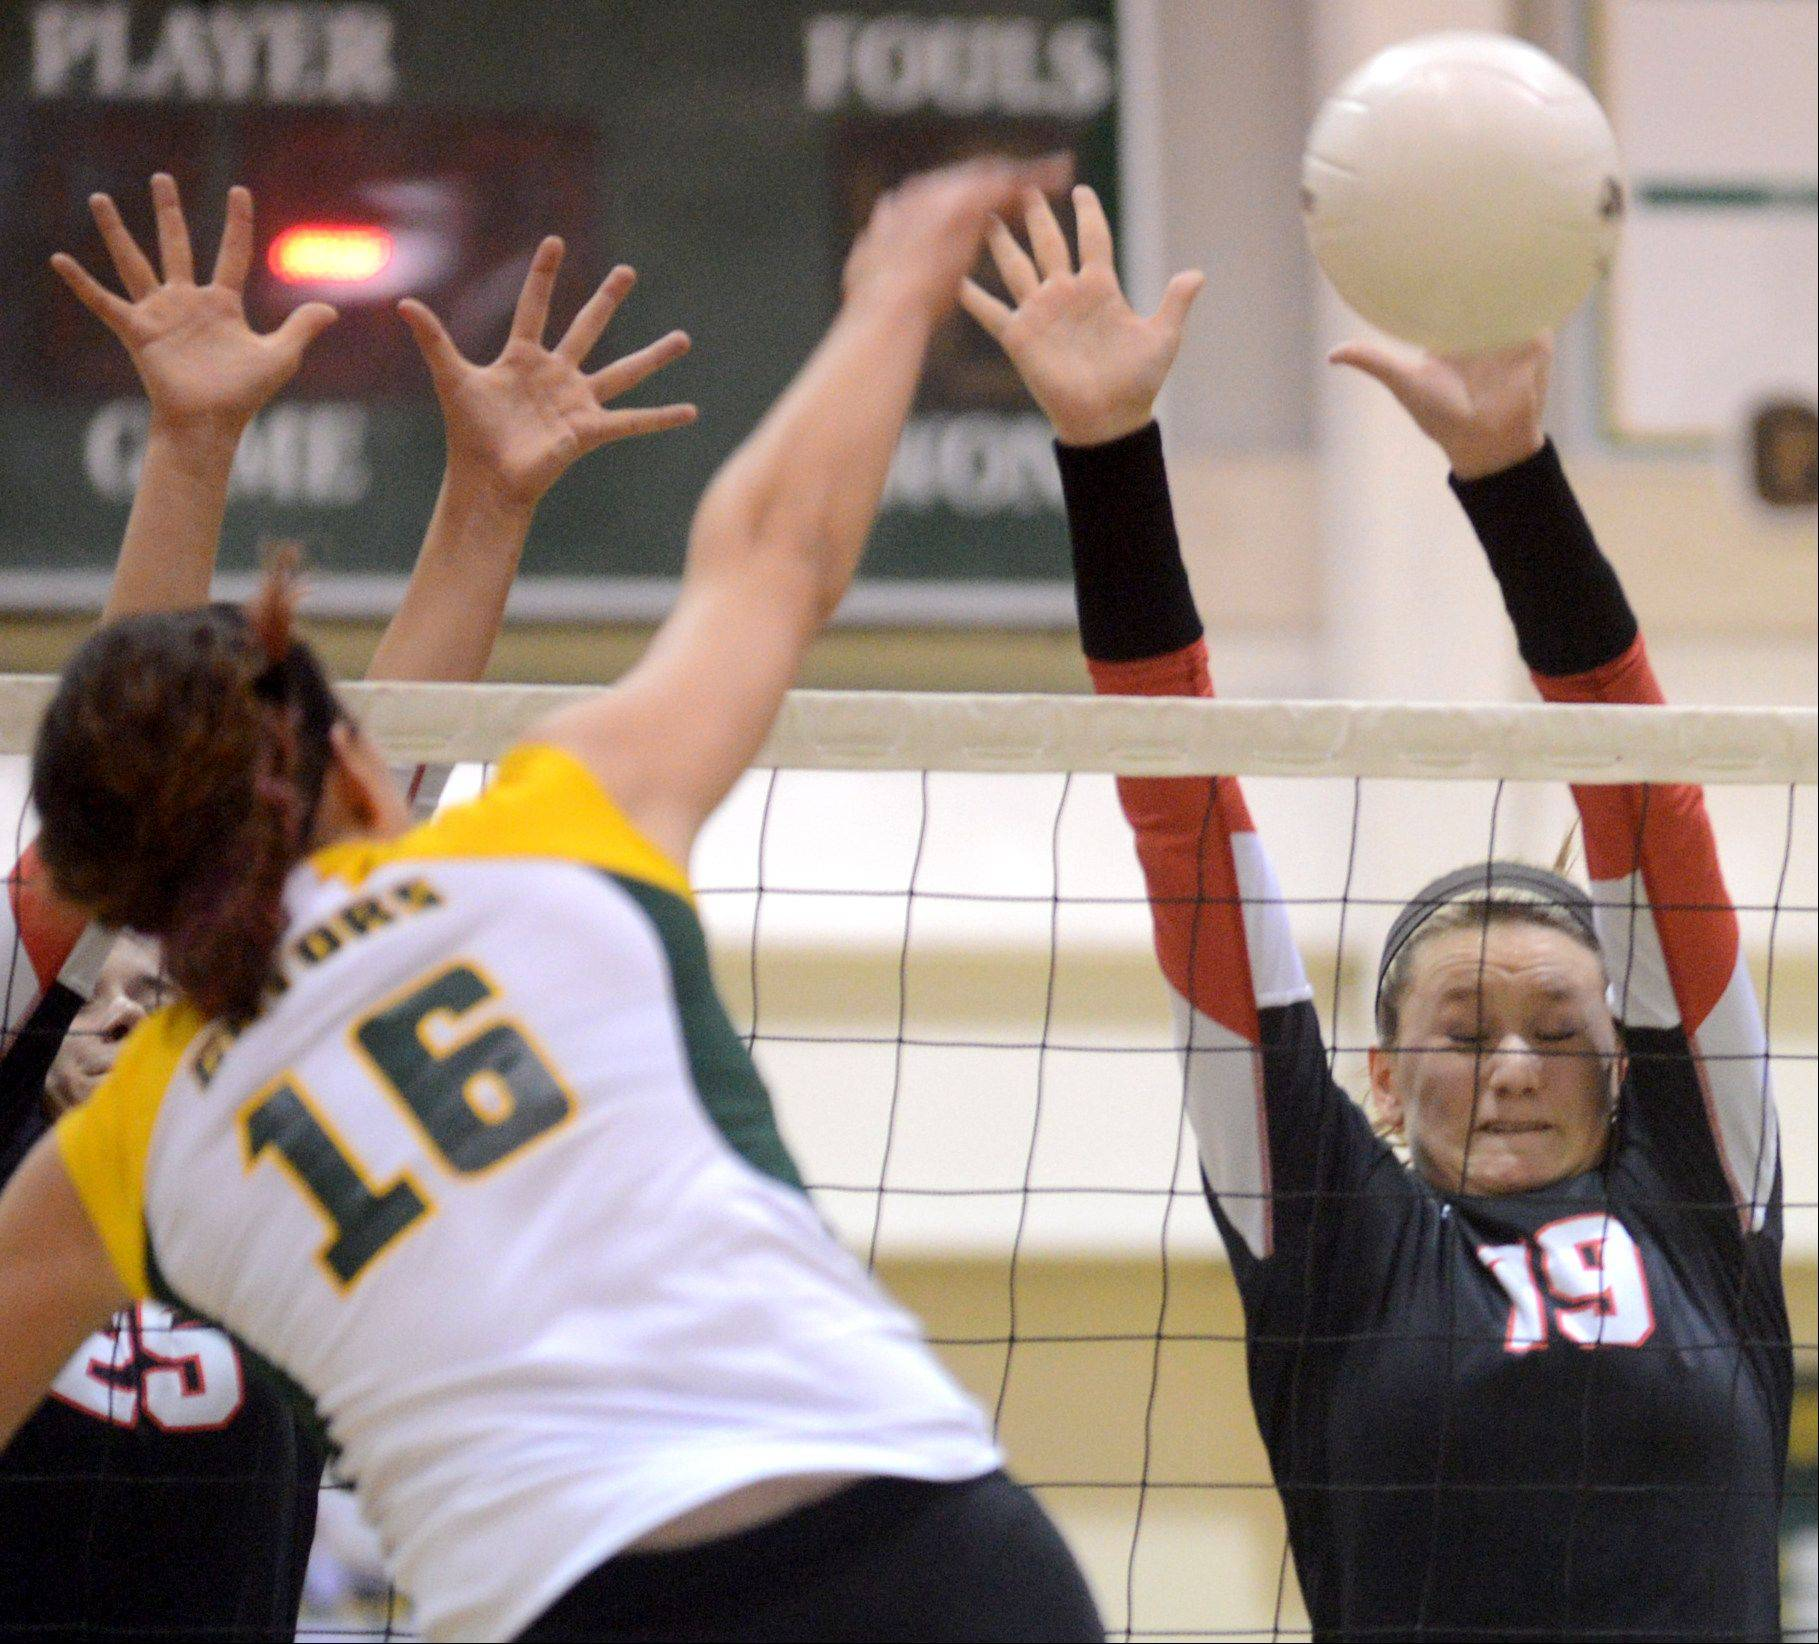 Crystal Lake South's Carly Nolan slams the ball against Huntley's Erin Erb, right, during varsity volleyball at Crystal Lake on Thursday night.